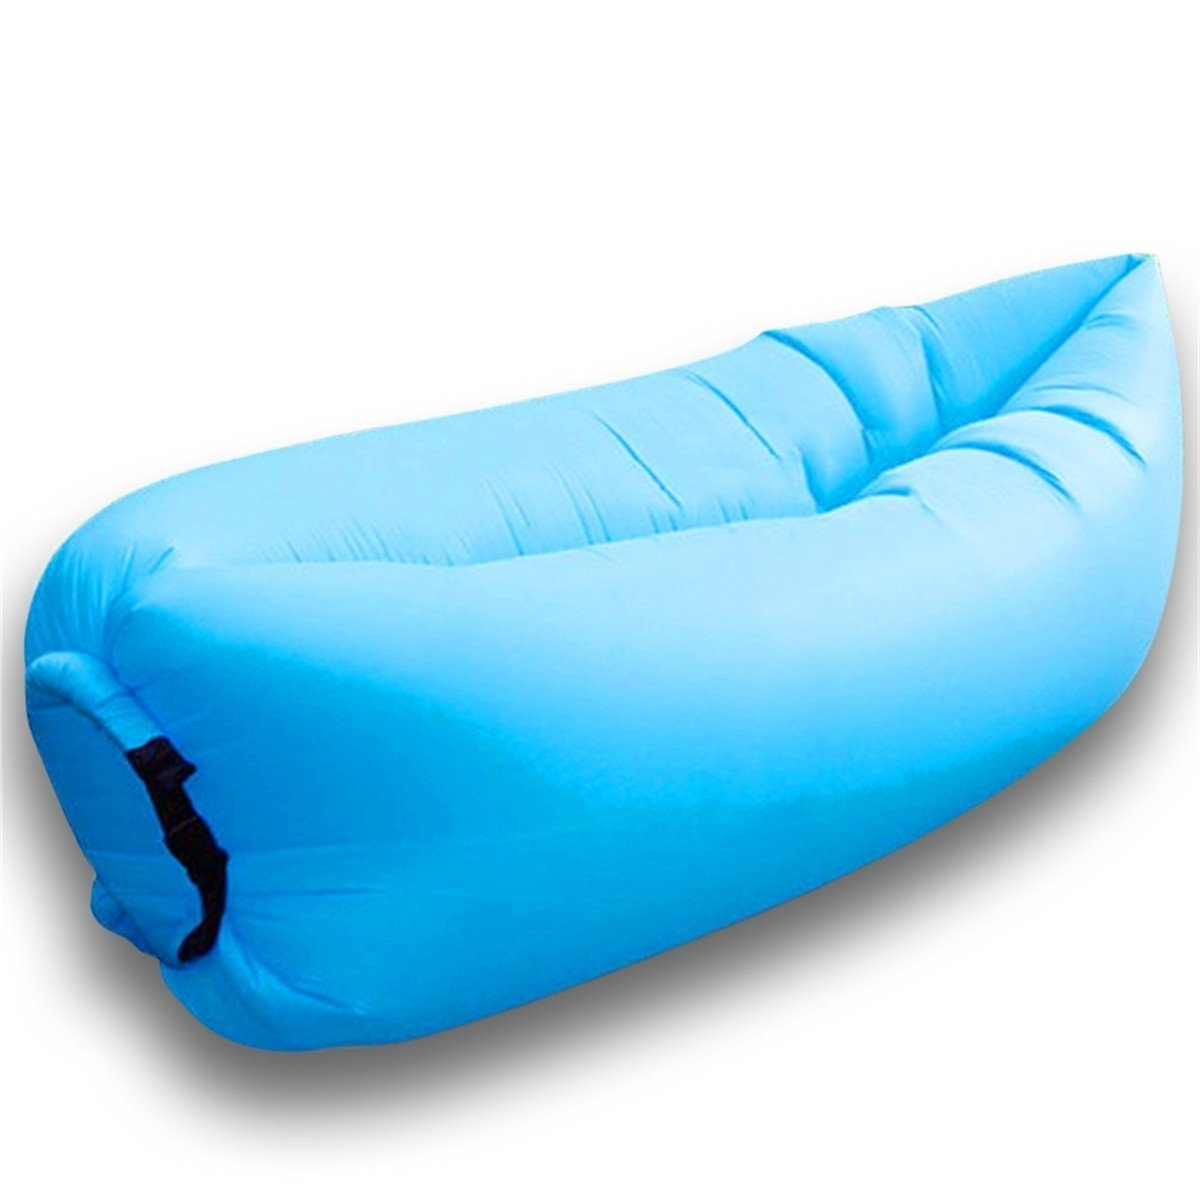 Favorite Inflatable Sofas And Chairs Intended For Inflatable Sofa Chair 56 With Inflatable Sofa Chair (View 6 of 15)